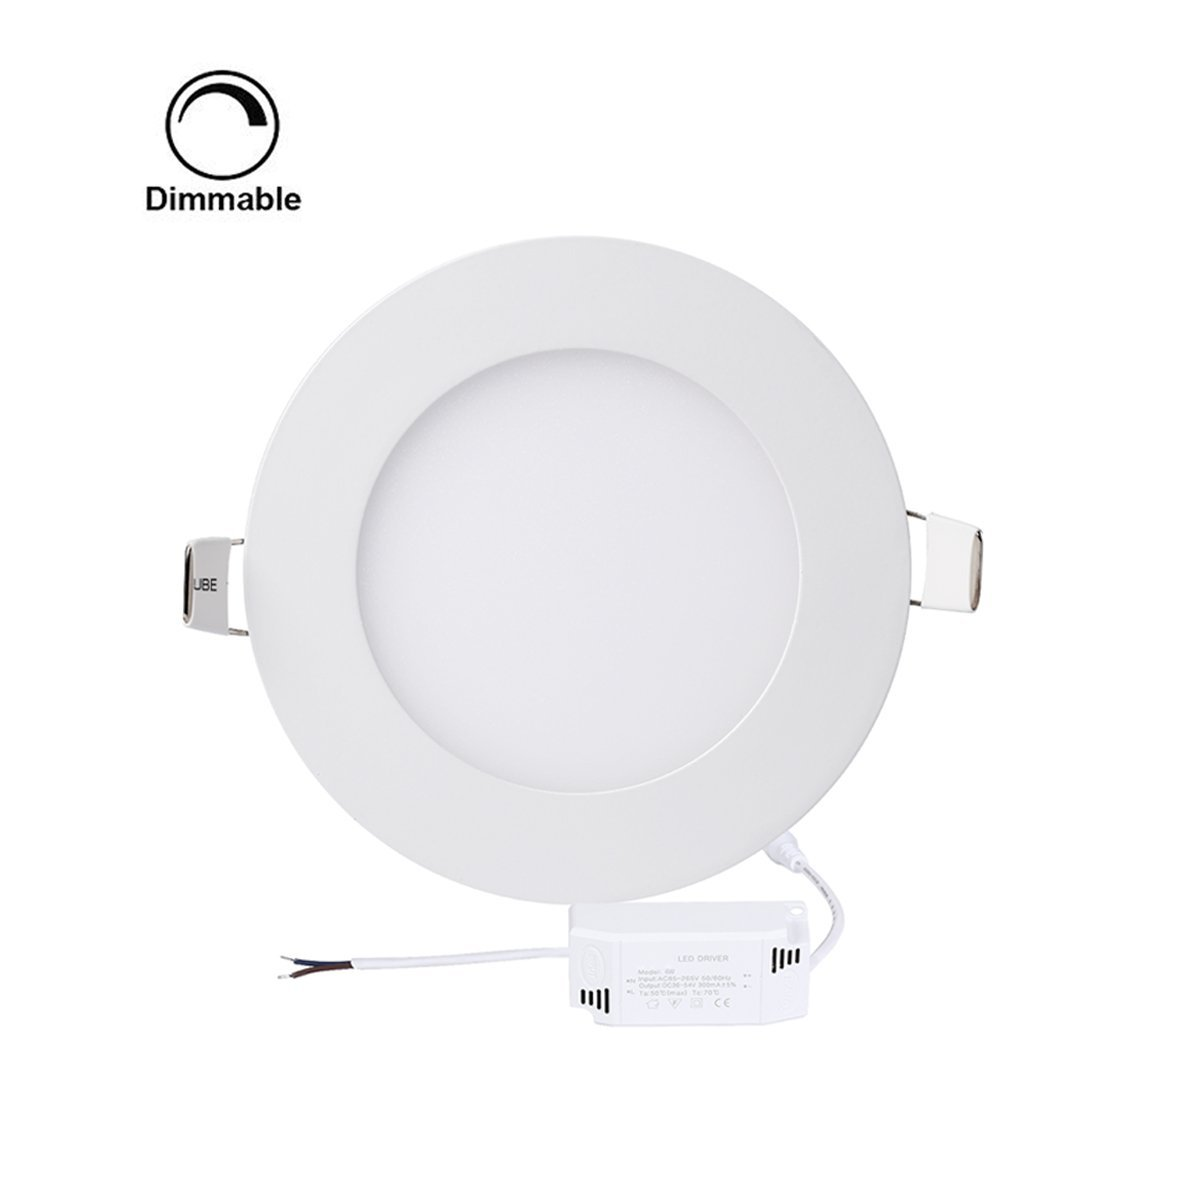 ProGreen 12W Flat LED Panel Light Lamp, Dimmable Round Ultrathin LED Recessed Downlight, 960lm, Neutral White 4000K, Cut Hole 6.1 Inch, Panel Ceiling Lighting with 110V LED Driver